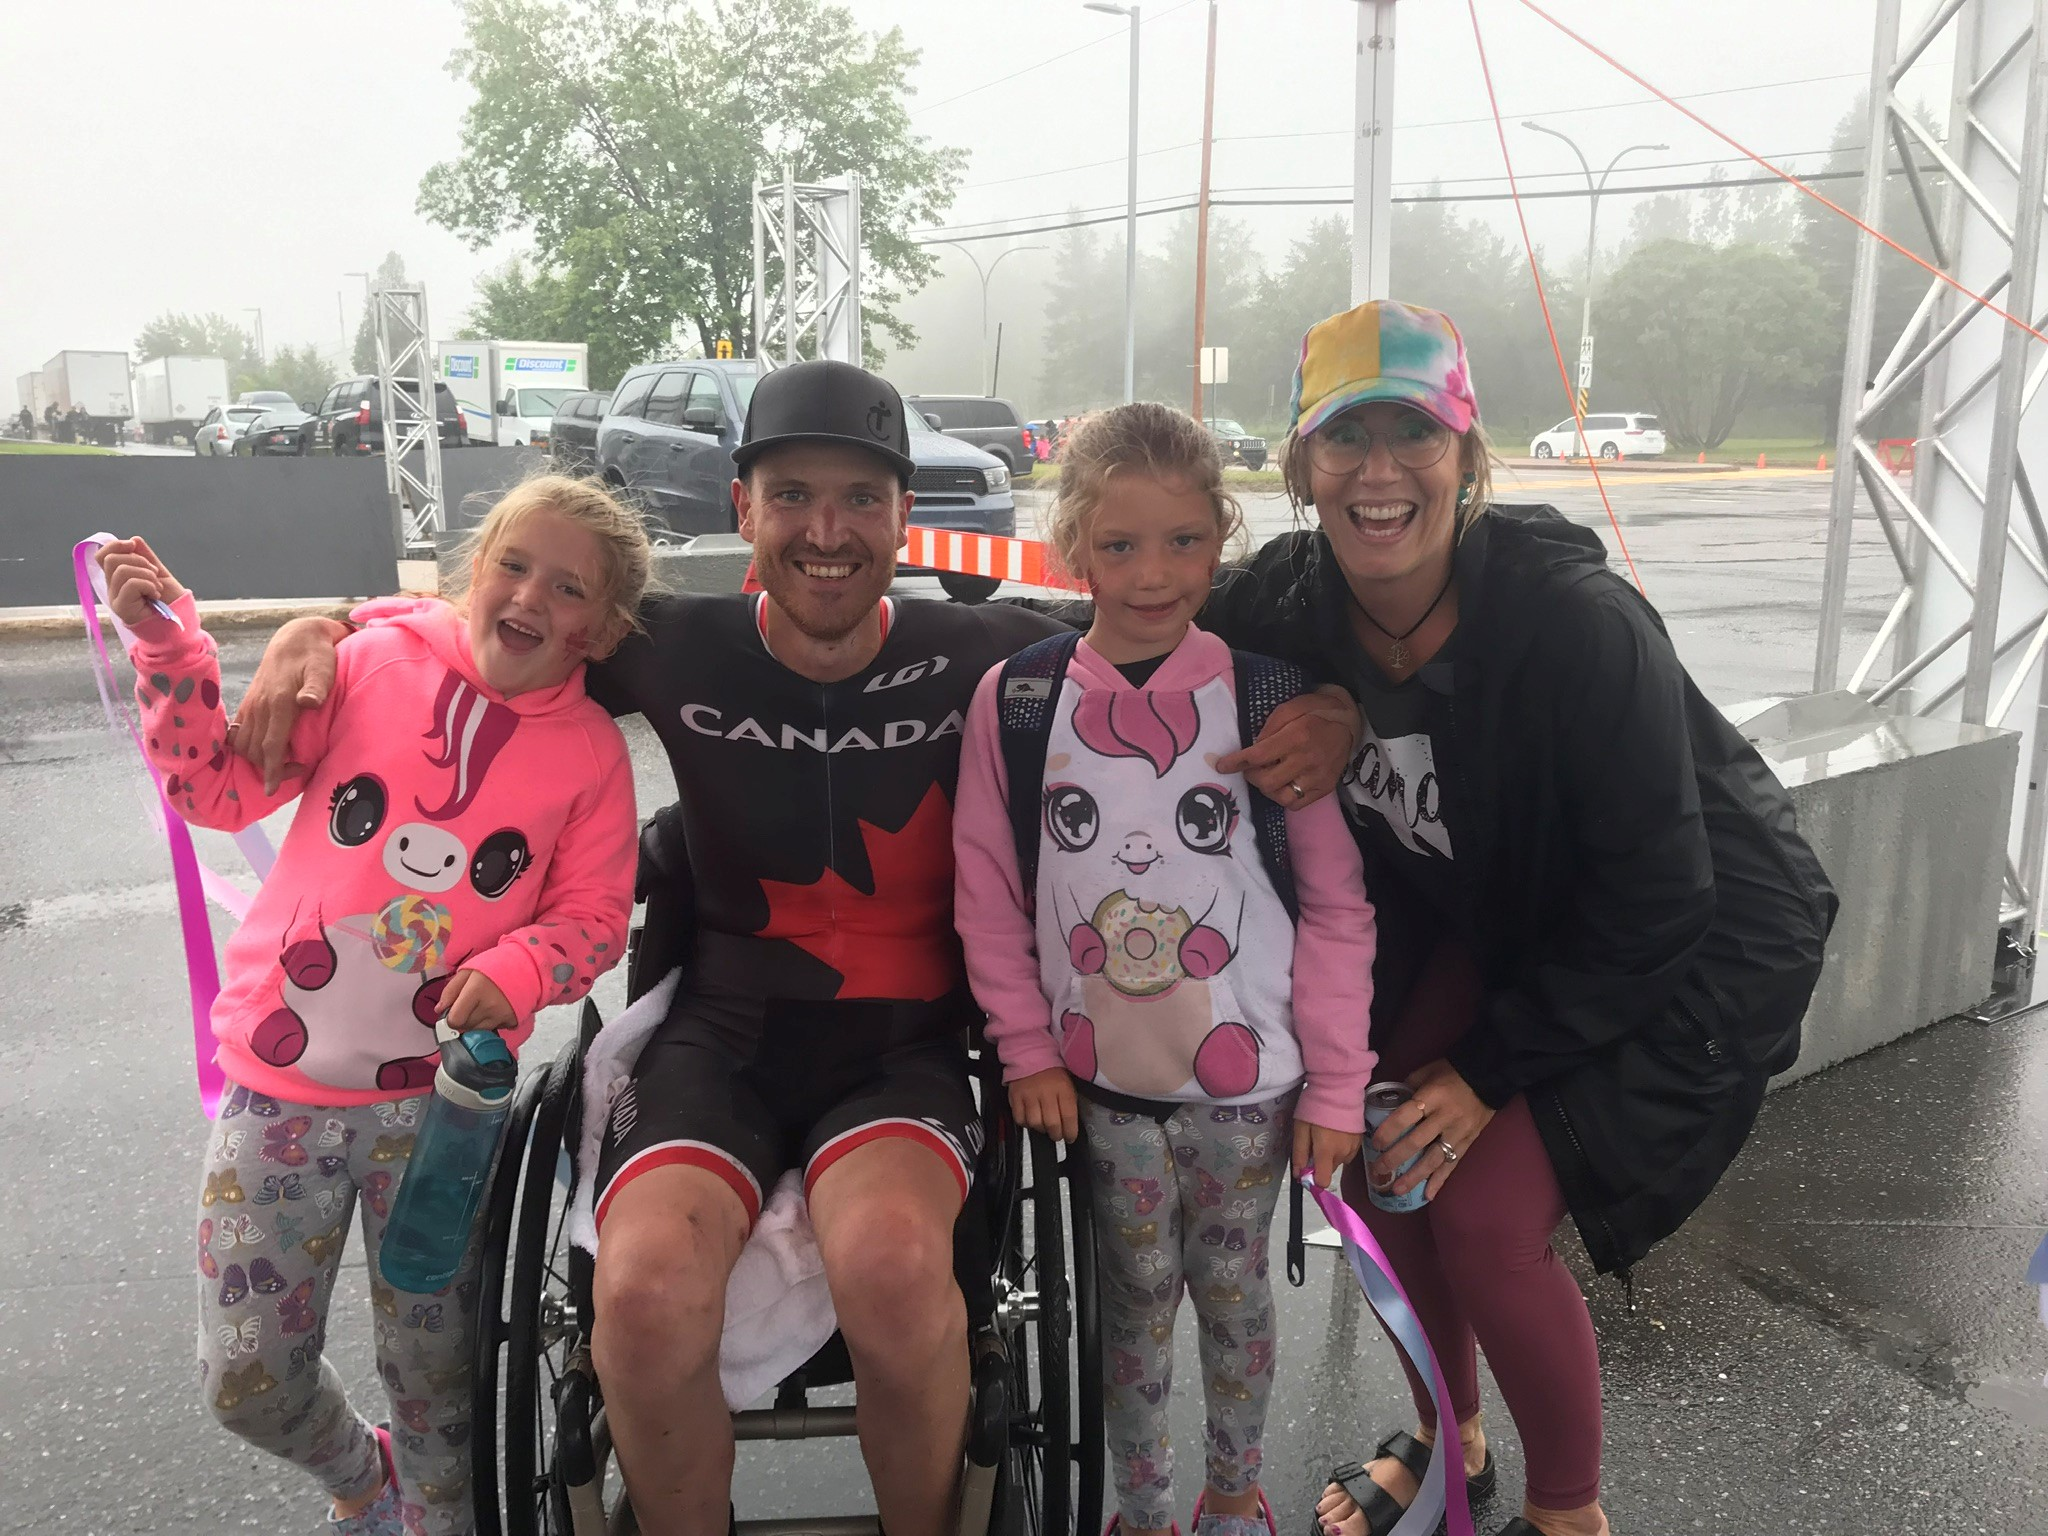 Matt with his family, two young girls and his wife